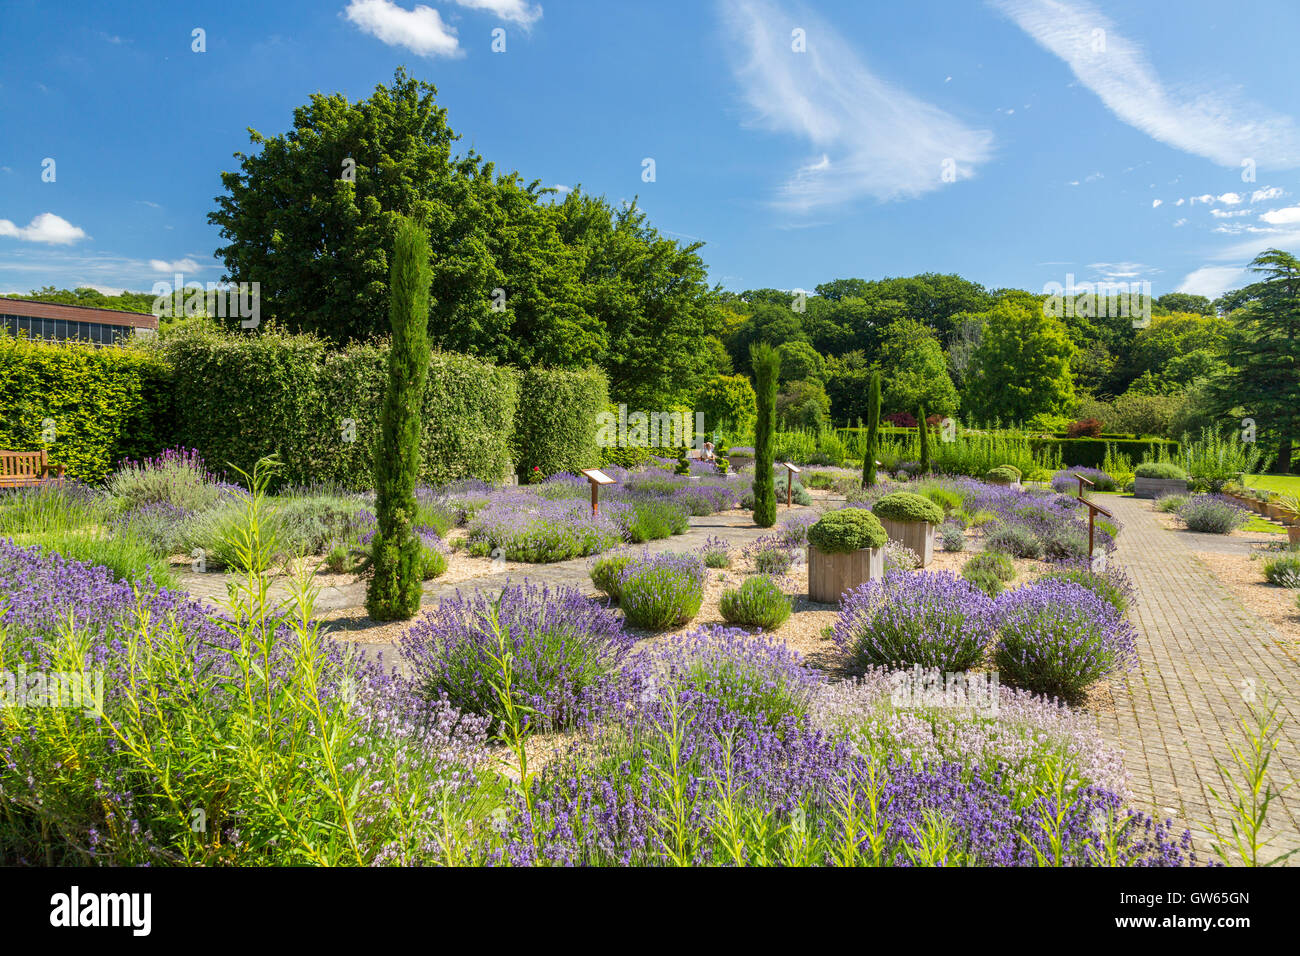 Stunning The Lavender Garden At Buckfast Abbey Completed  A  With Exciting The Lavender Garden At Buckfast Abbey Completed  A Benedictine  Monastery In Buckfastleigh With Extraordinary Gardening Life Magazine Also Climbing Frames For Small Gardens In Addition Childrens Garden Table And Chairs And Shropshire Gardens As Well As What To Do In The Garden Route Additionally Belgium Restaurant Covent Garden From Alamycom With   Exciting The Lavender Garden At Buckfast Abbey Completed  A  With Extraordinary The Lavender Garden At Buckfast Abbey Completed  A Benedictine  Monastery In Buckfastleigh And Stunning Gardening Life Magazine Also Climbing Frames For Small Gardens In Addition Childrens Garden Table And Chairs From Alamycom